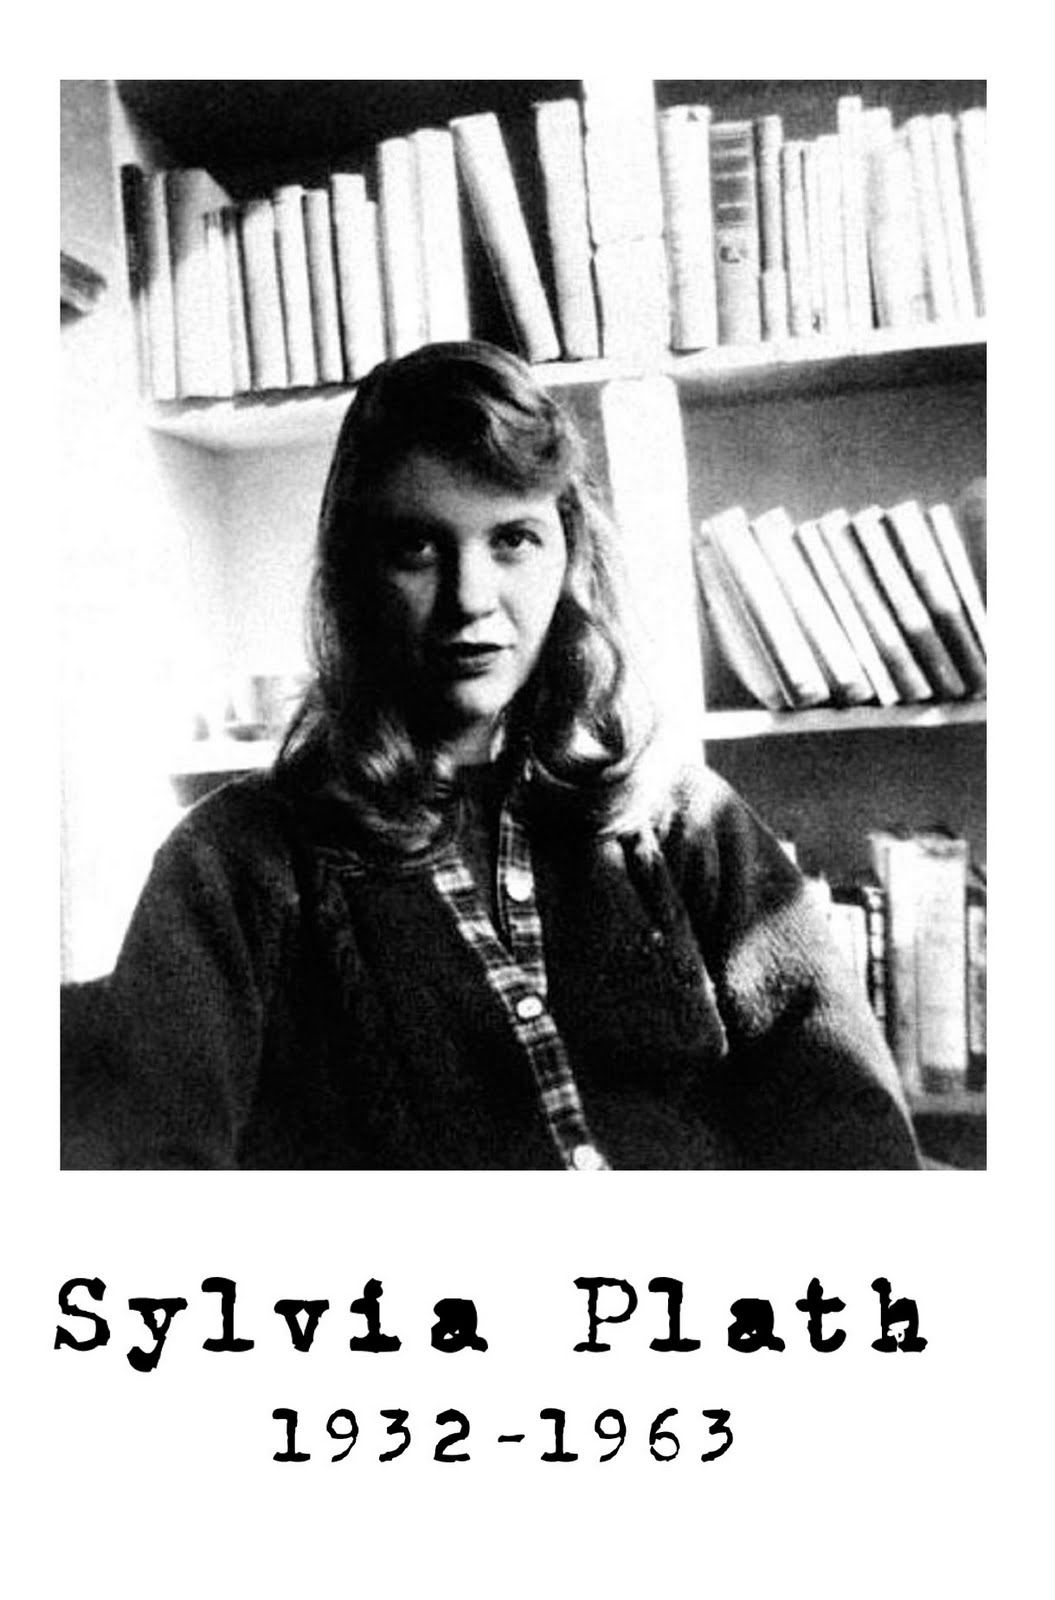 an comparison of the views on death of sylvia plath and philip larkin Philip larkin poems  continuing to live continuing to live on that green evening when our death begins  sylvia plath ee cummings.